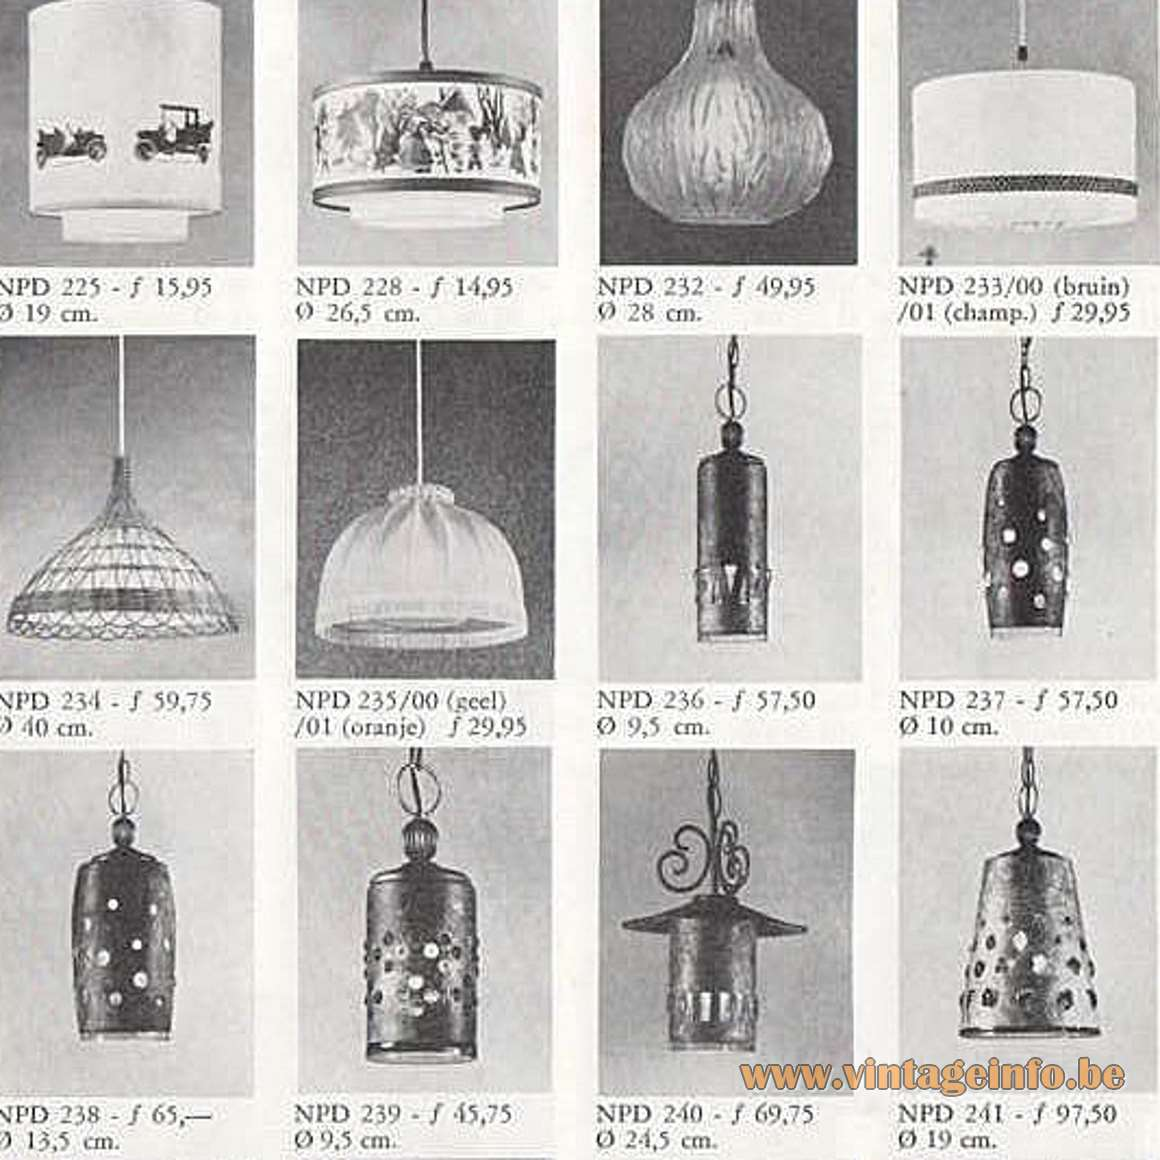 Burned Copper Caged Glass Pendant Lamps - Philips 1968 lighting catalogue